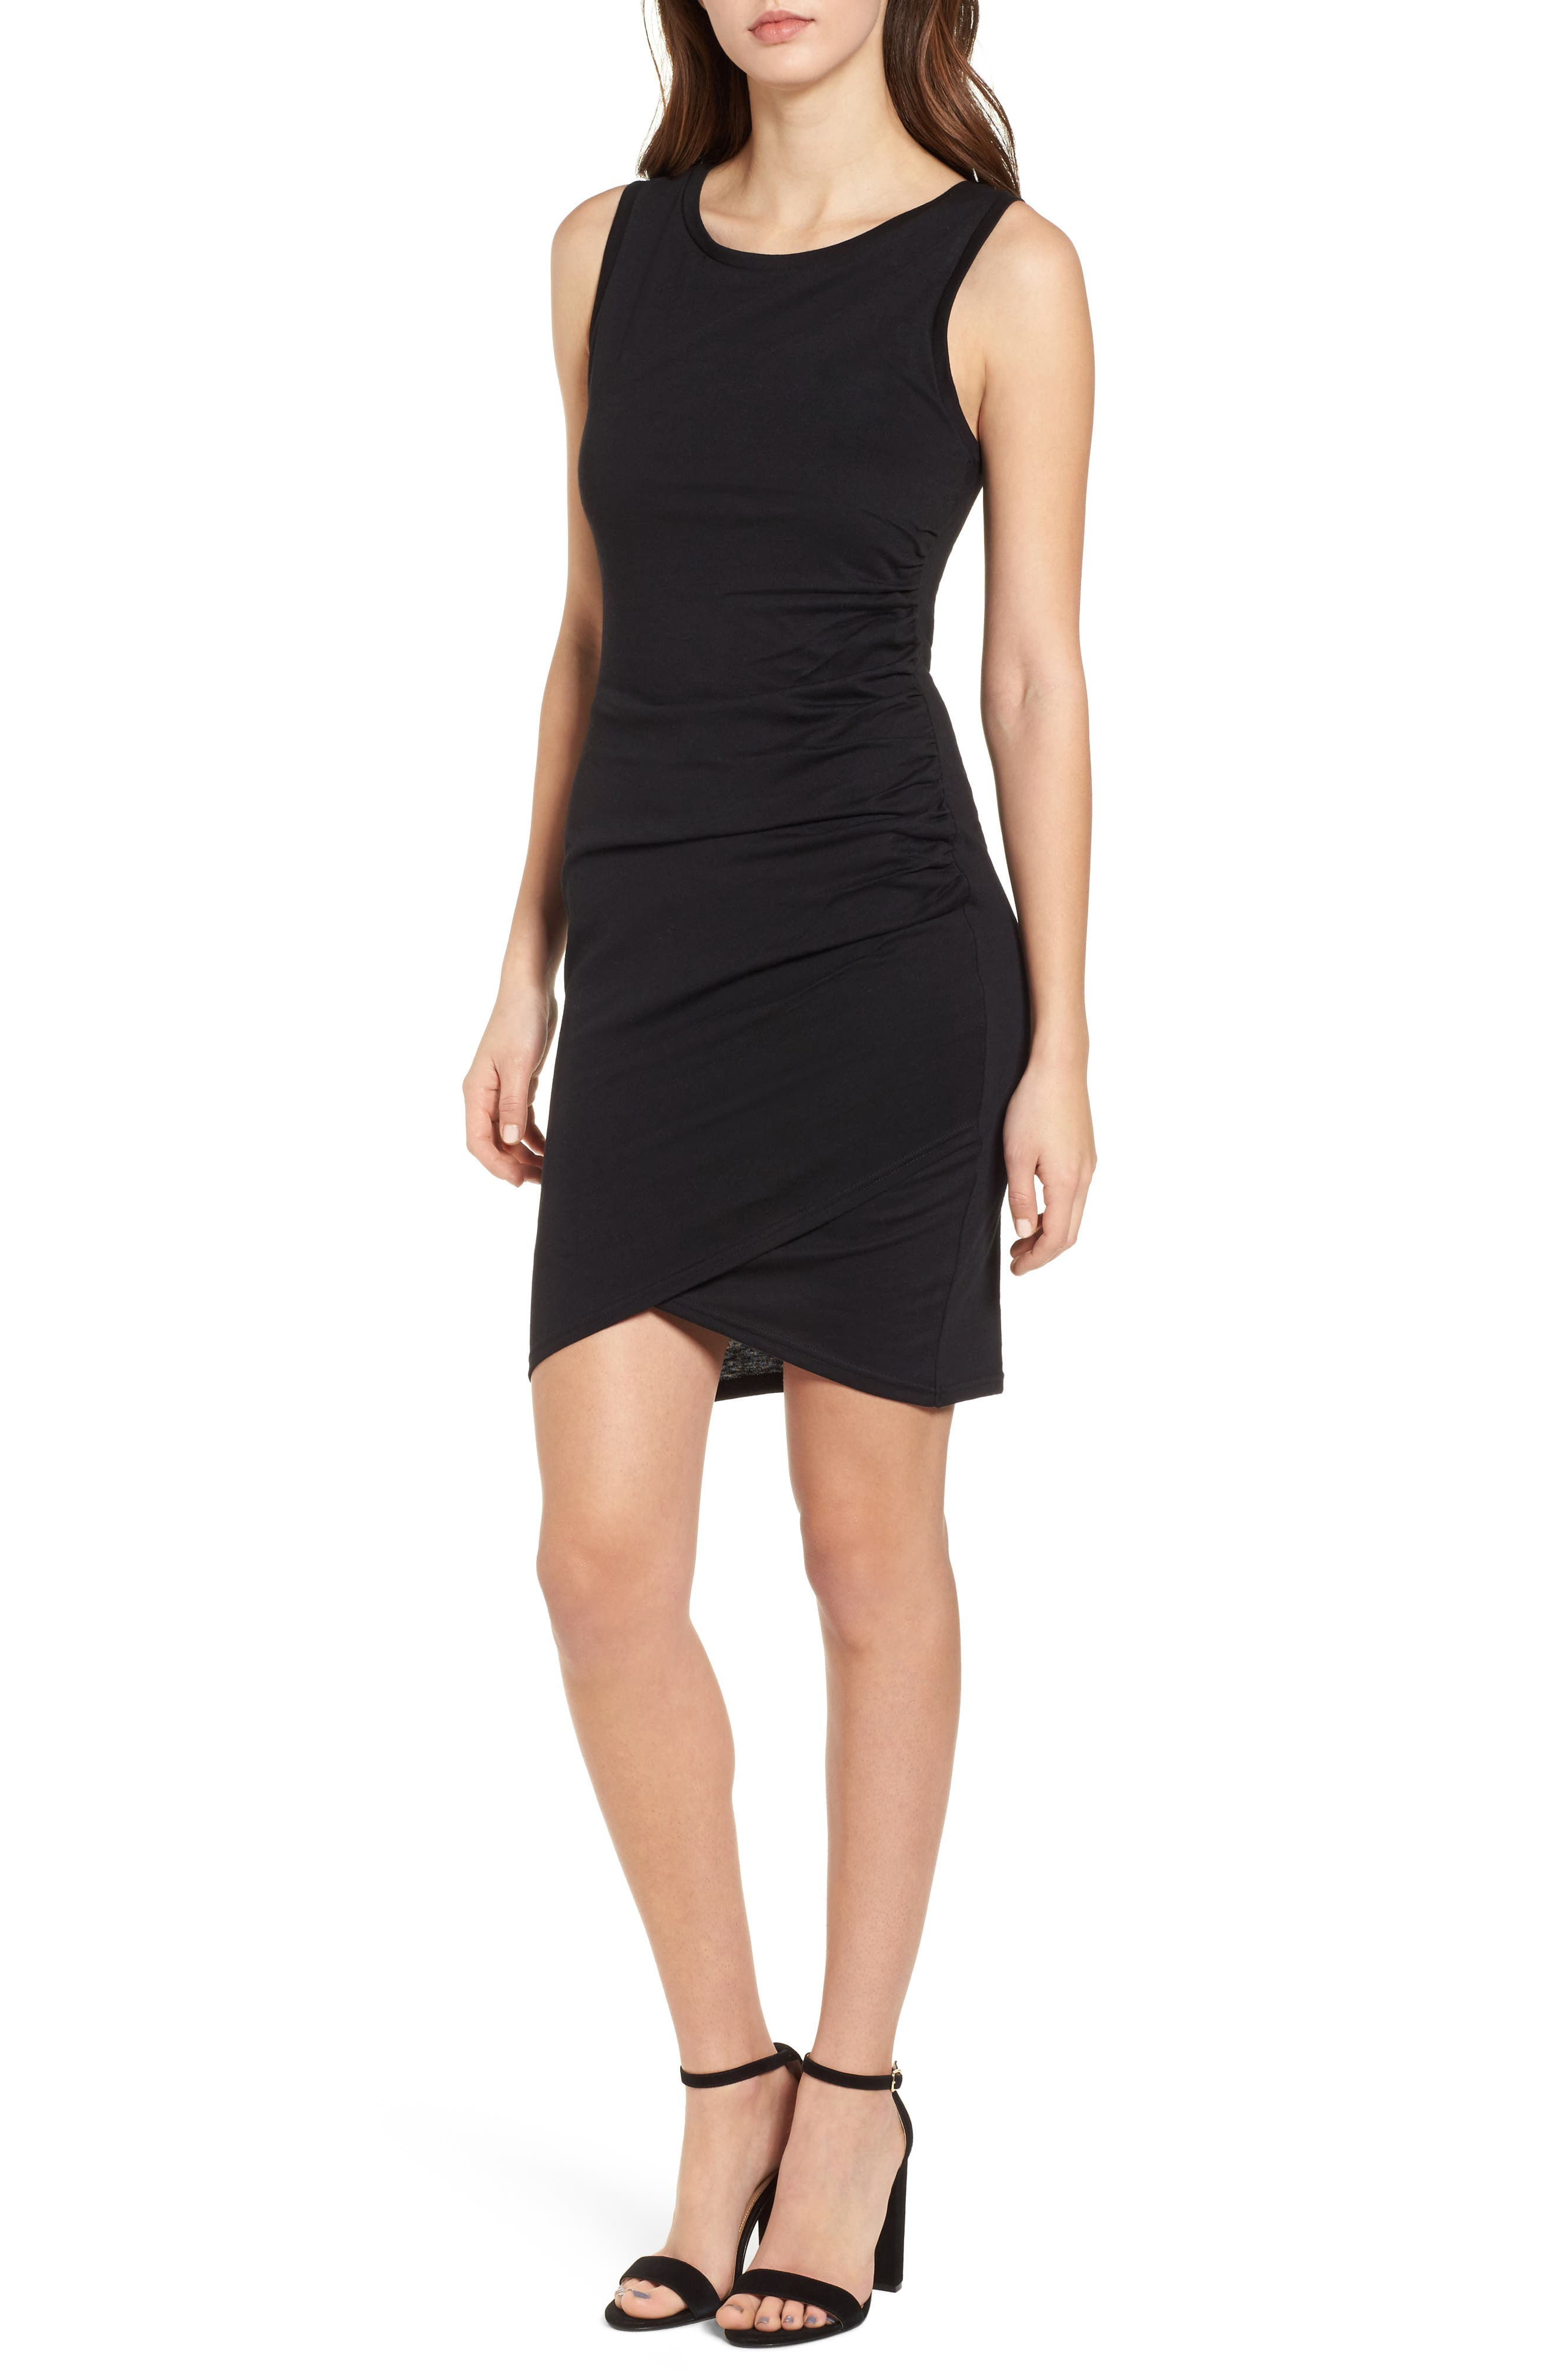 LEITH, Ruched Body-Con Tank Dress, Main thumbnail 1, color, BLACK